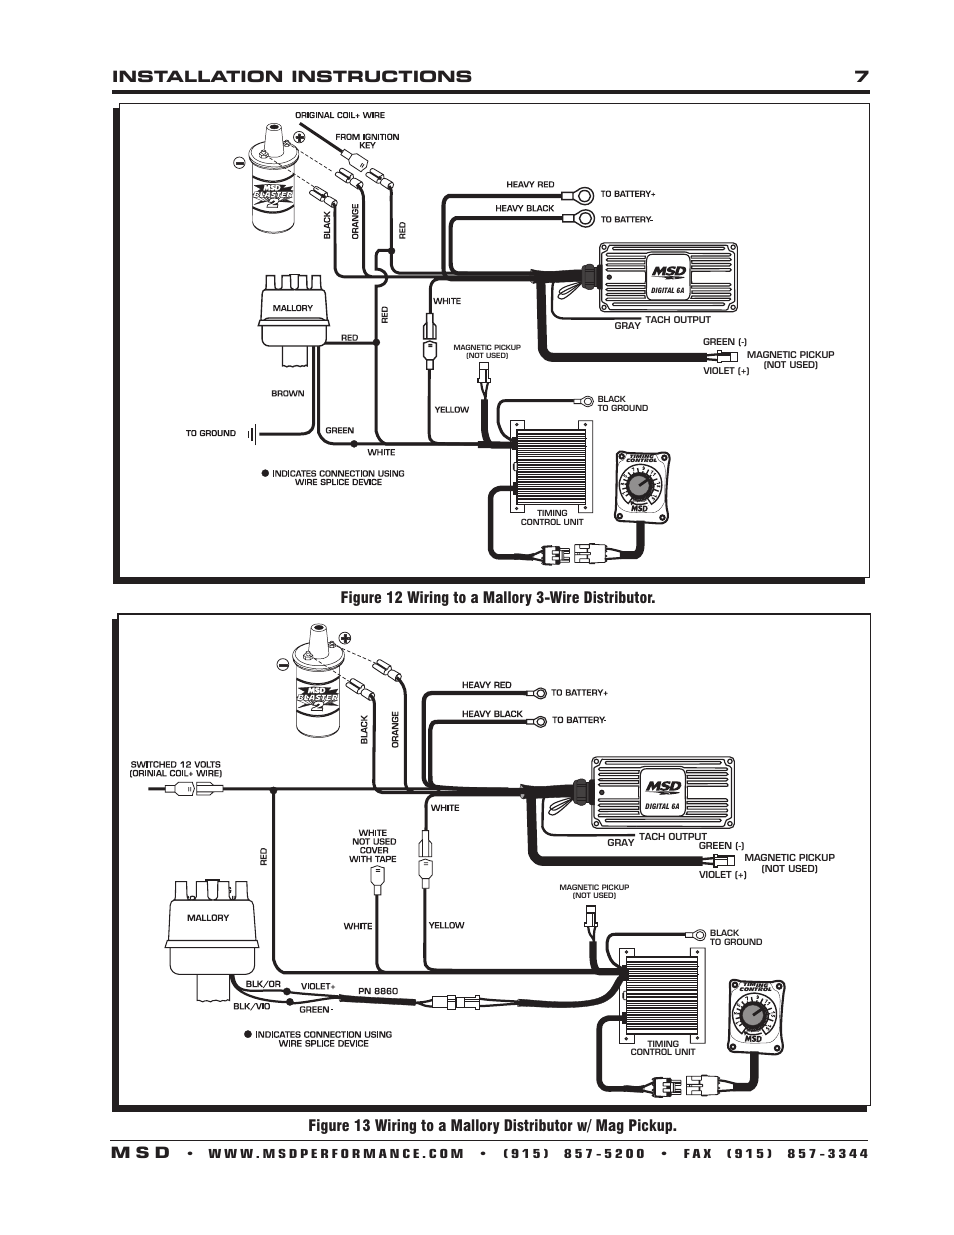 installation instructions 7 m s d   msd 8680 adjustable timing control  installation user manual   page 7 / 8  manuals directory